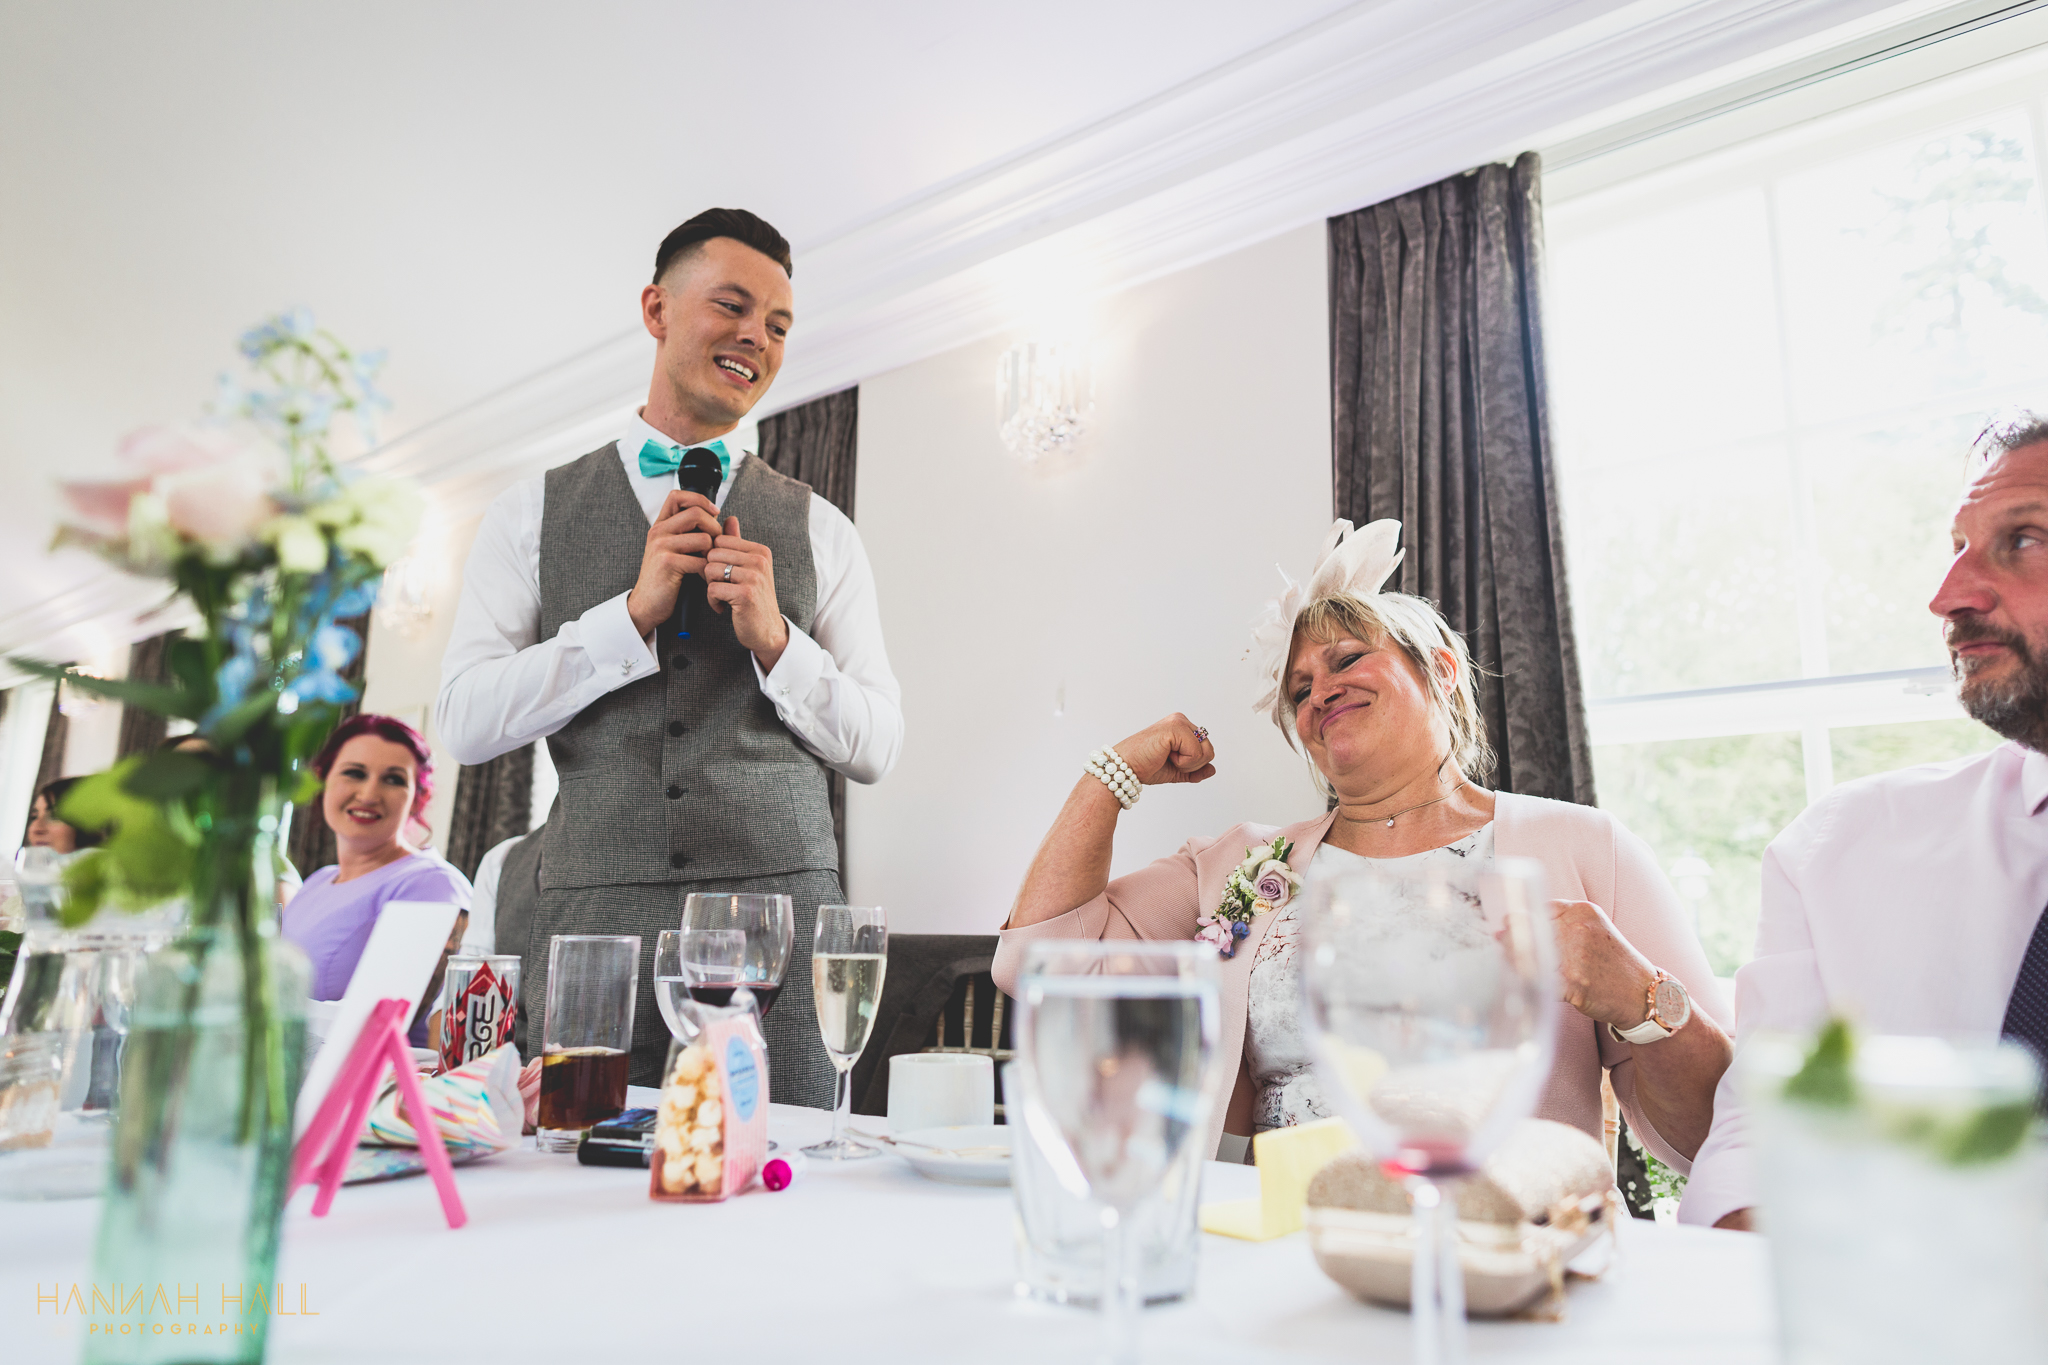 fun-wedding-barton-hall-kettering-57